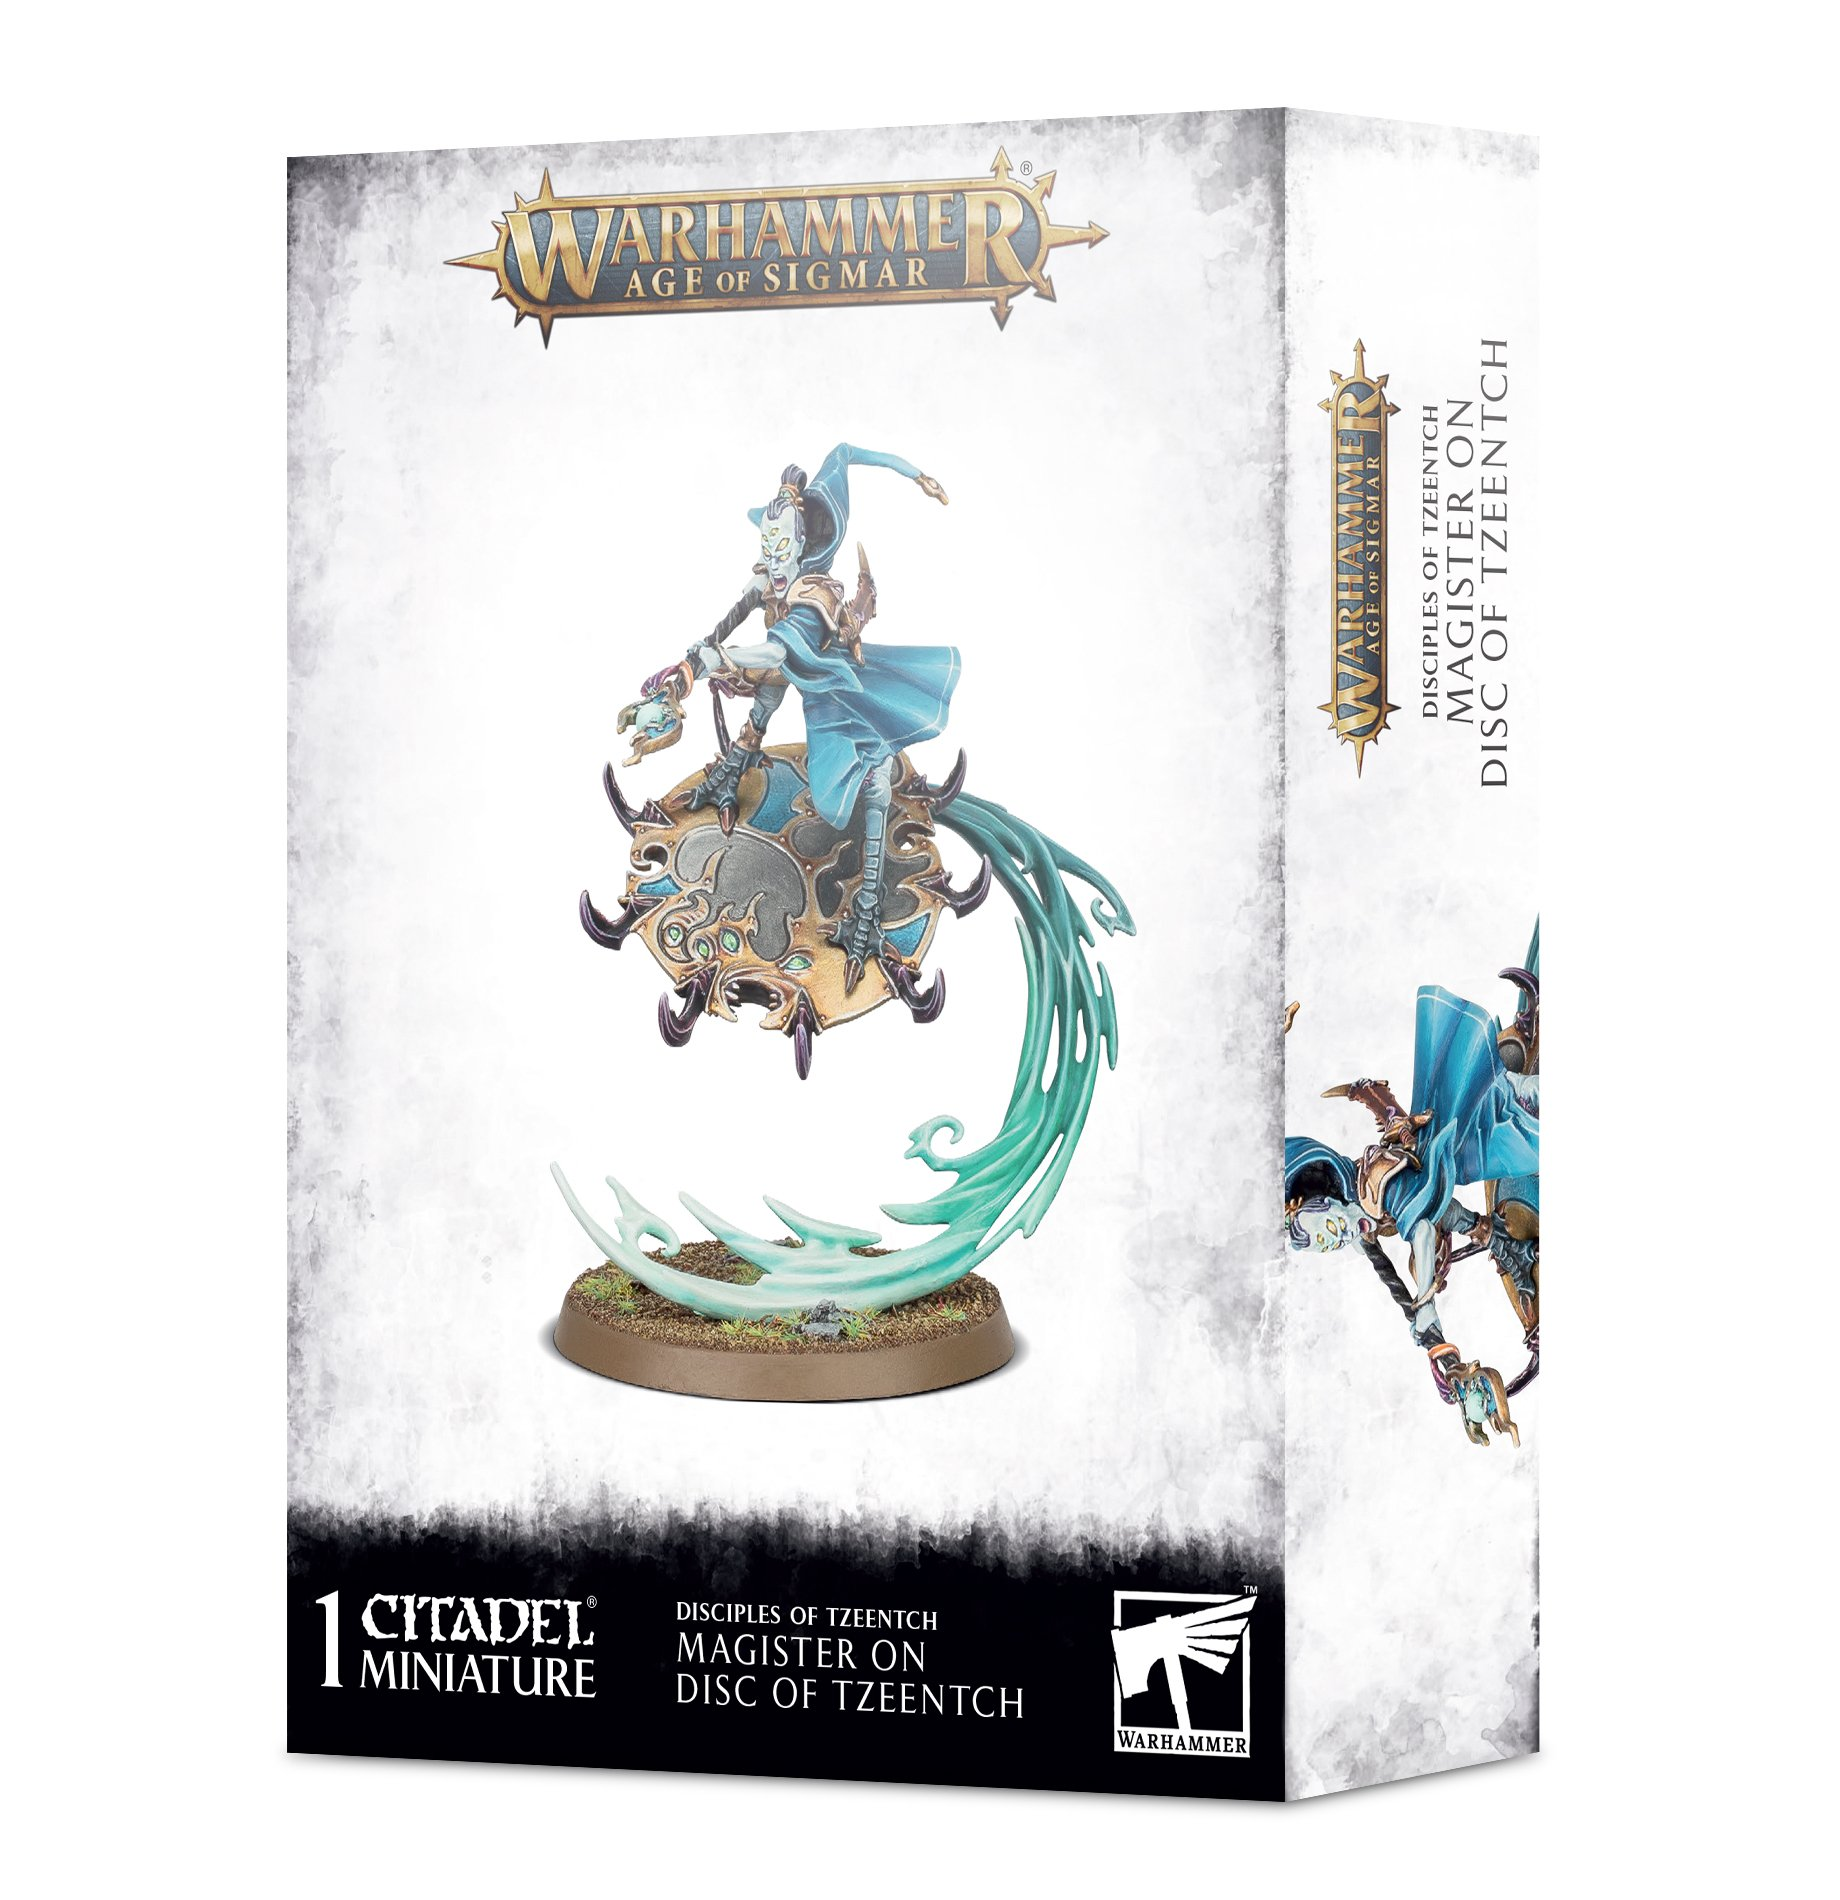 Warhamer Age Of Sigmar: Disciples of Tzeentch: Magister on Disc of Tzeentch